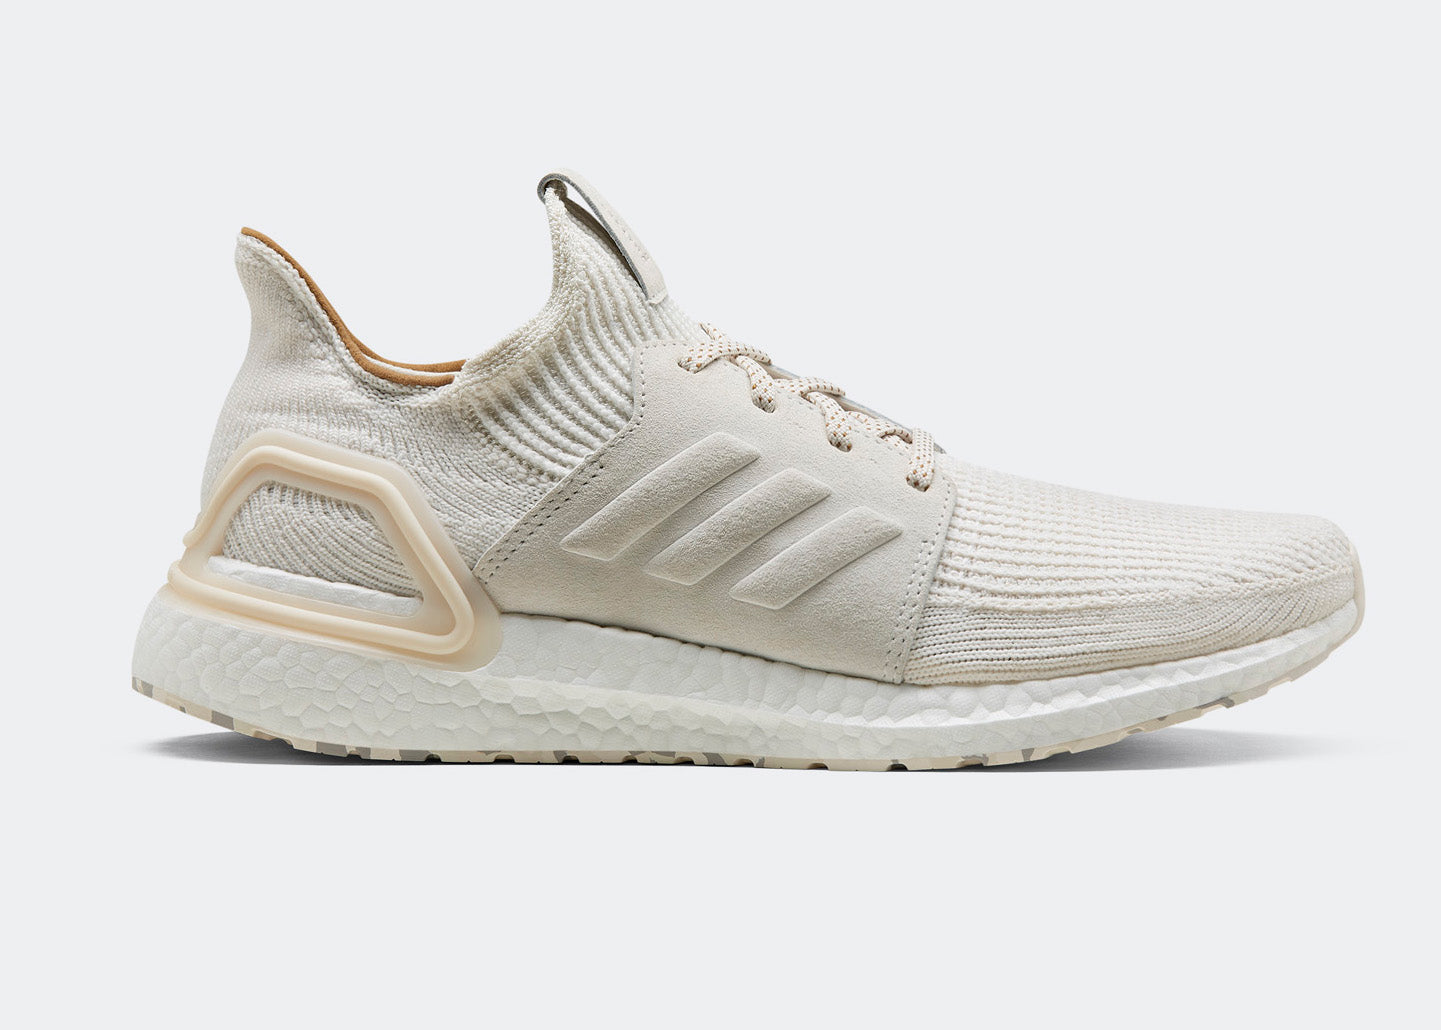 Universal Works x adidas running ultraboost 19 shoe.